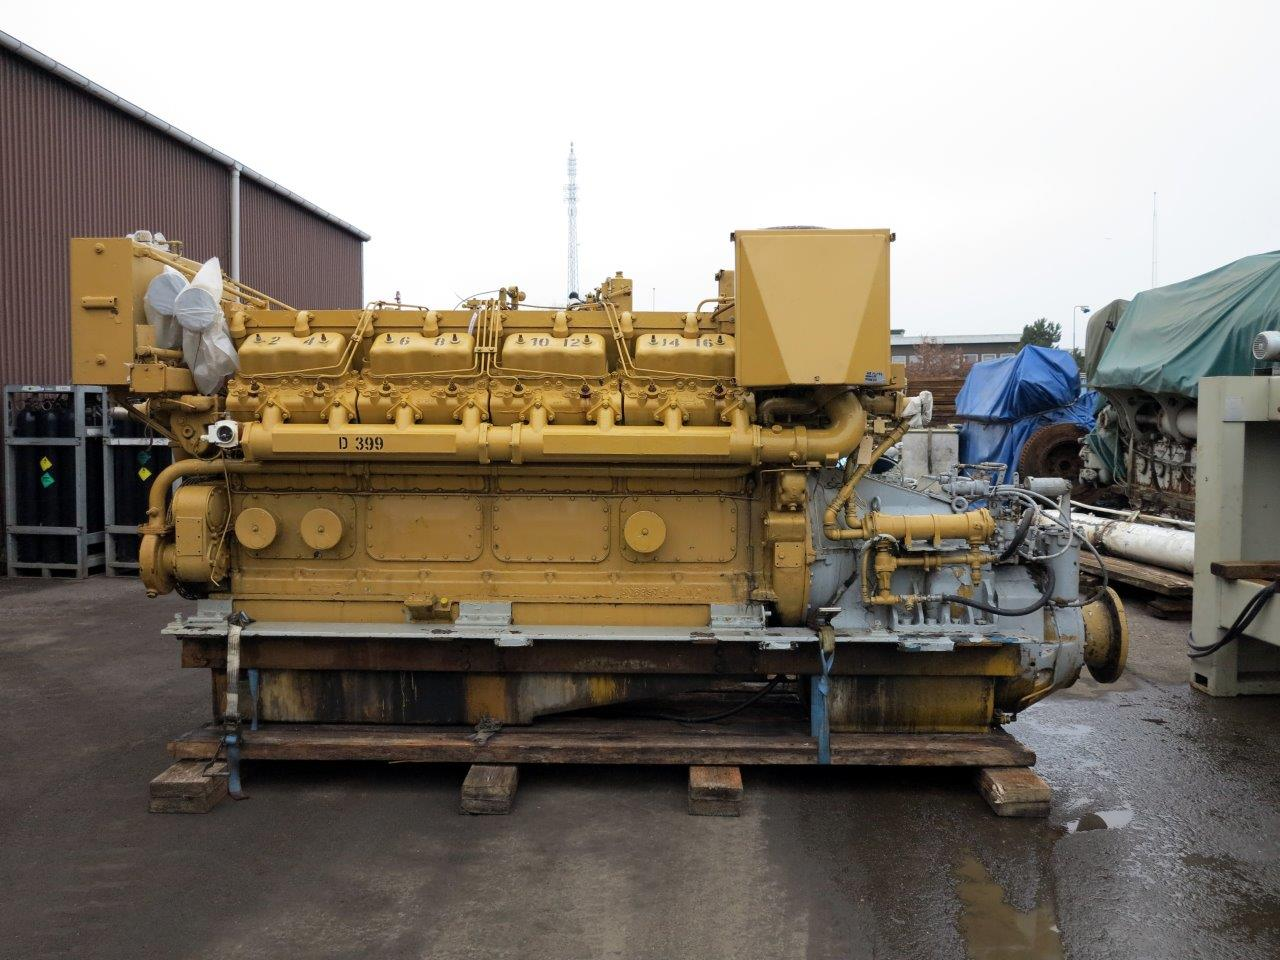 Caterpillar D399 Marine Engine - MEG4498